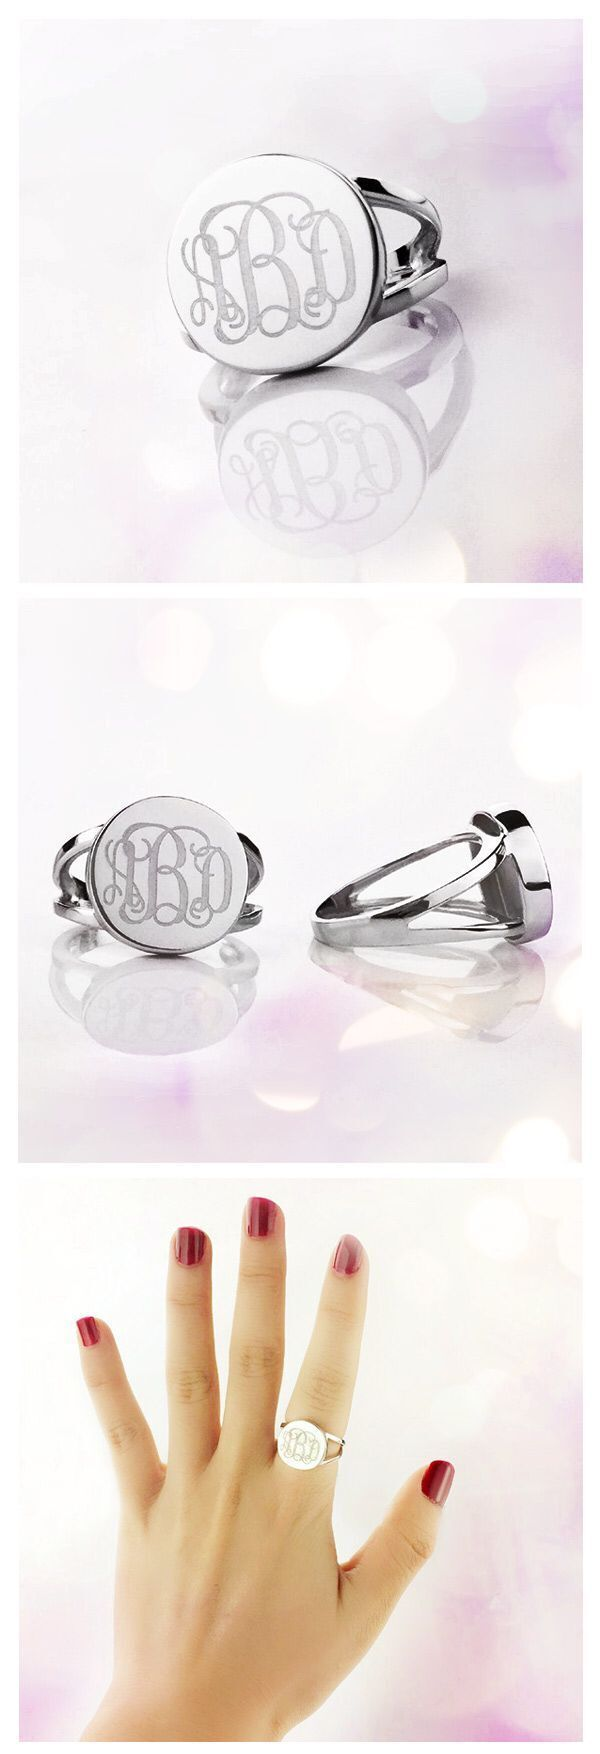 Our initial rings are exquisite, and will make you feel ready for any occasion! Don't have a monogram ring in your jewelry box? A engraved monogram Ring is just what you need to complete your collection.Come and discover more at Getnamenecklace.com